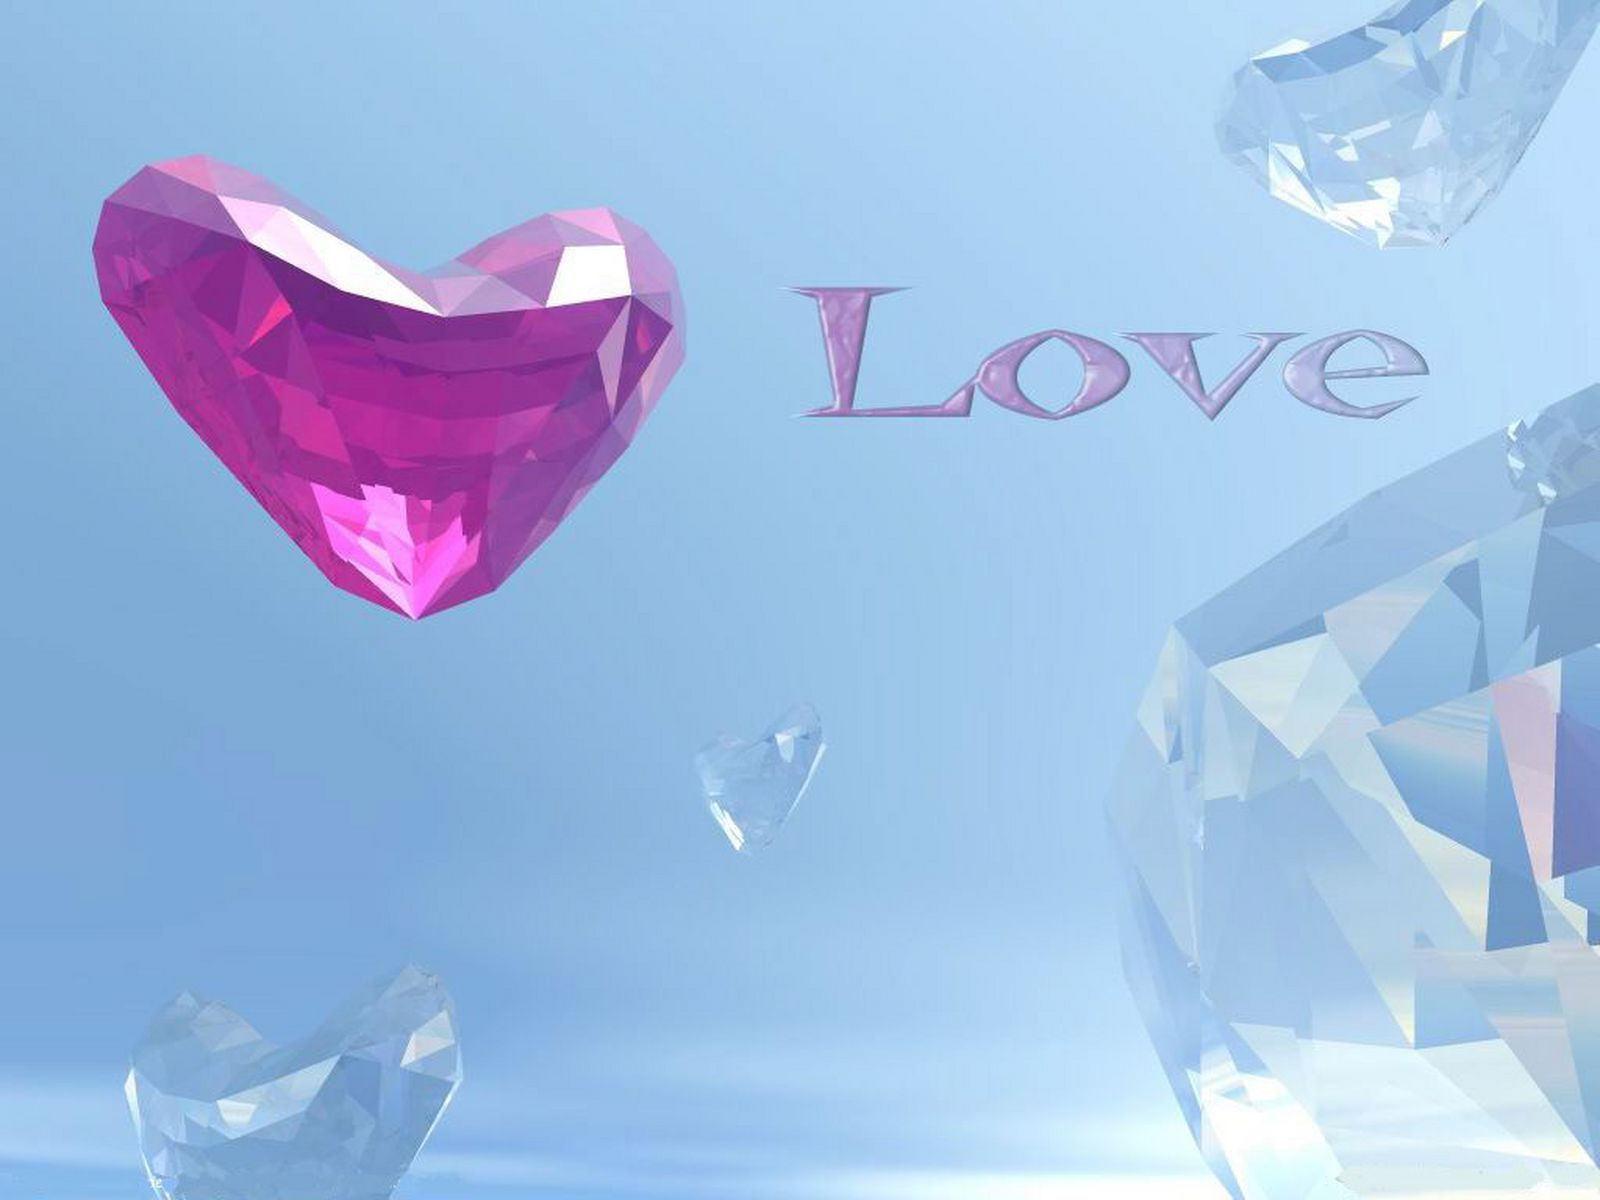 Hd Wallpapers Assassins Creed Wallpaper Backgrounds Cute Heart And Love Wallpapers With